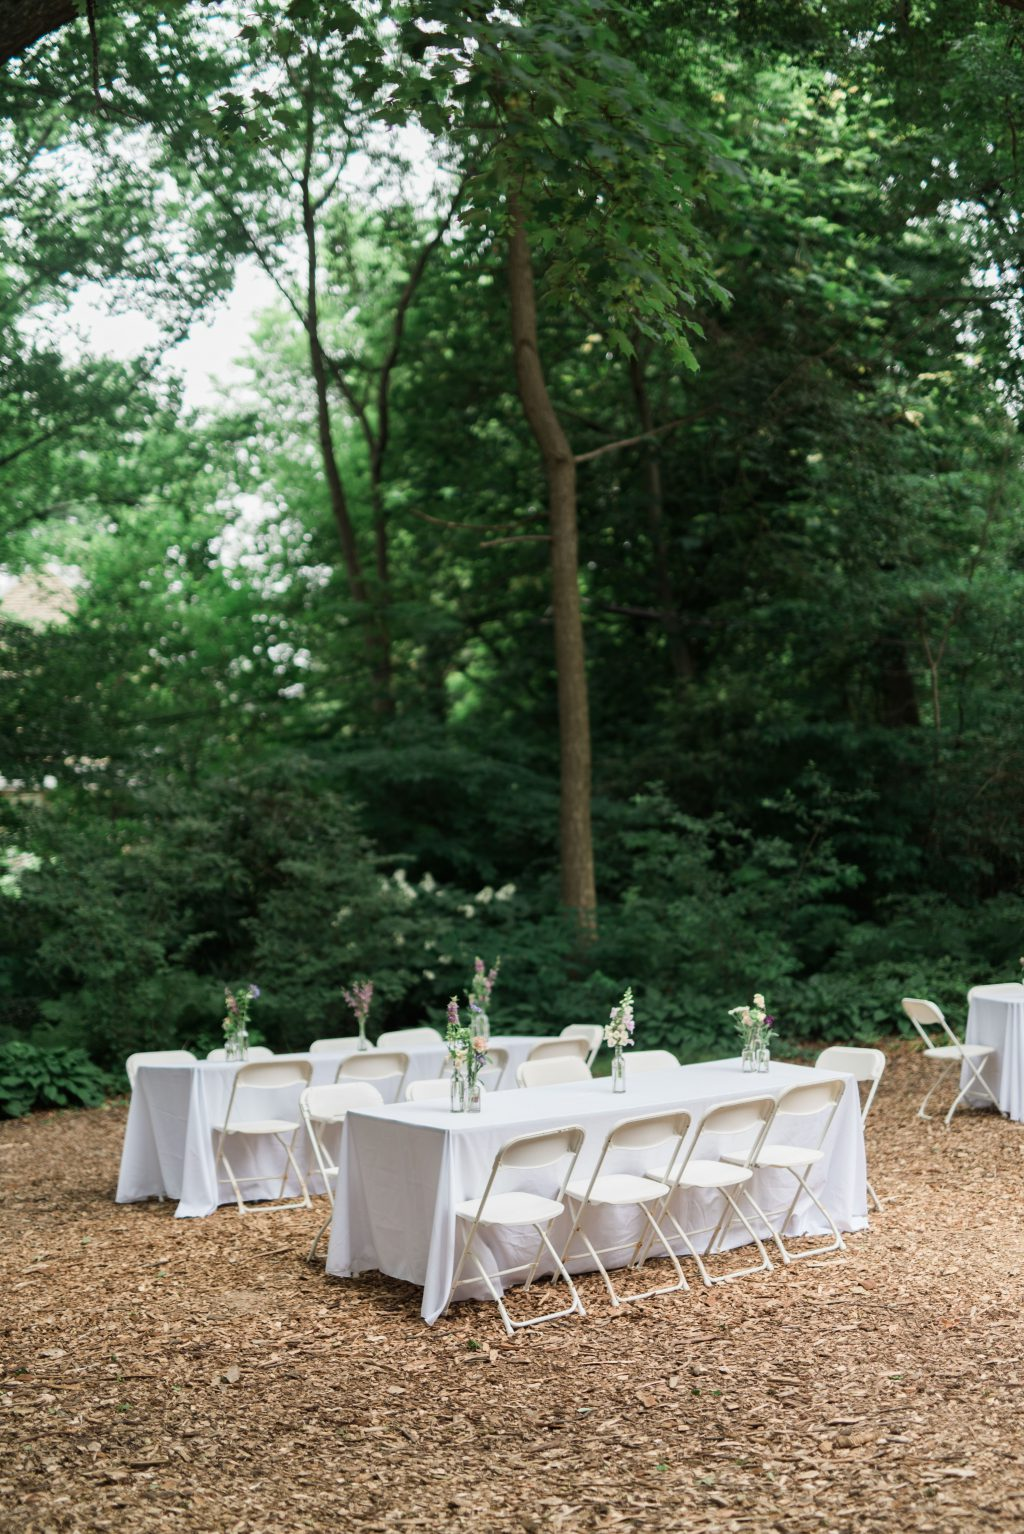 haley-richter-photo-awbury-arboretum-summer-wedding-023